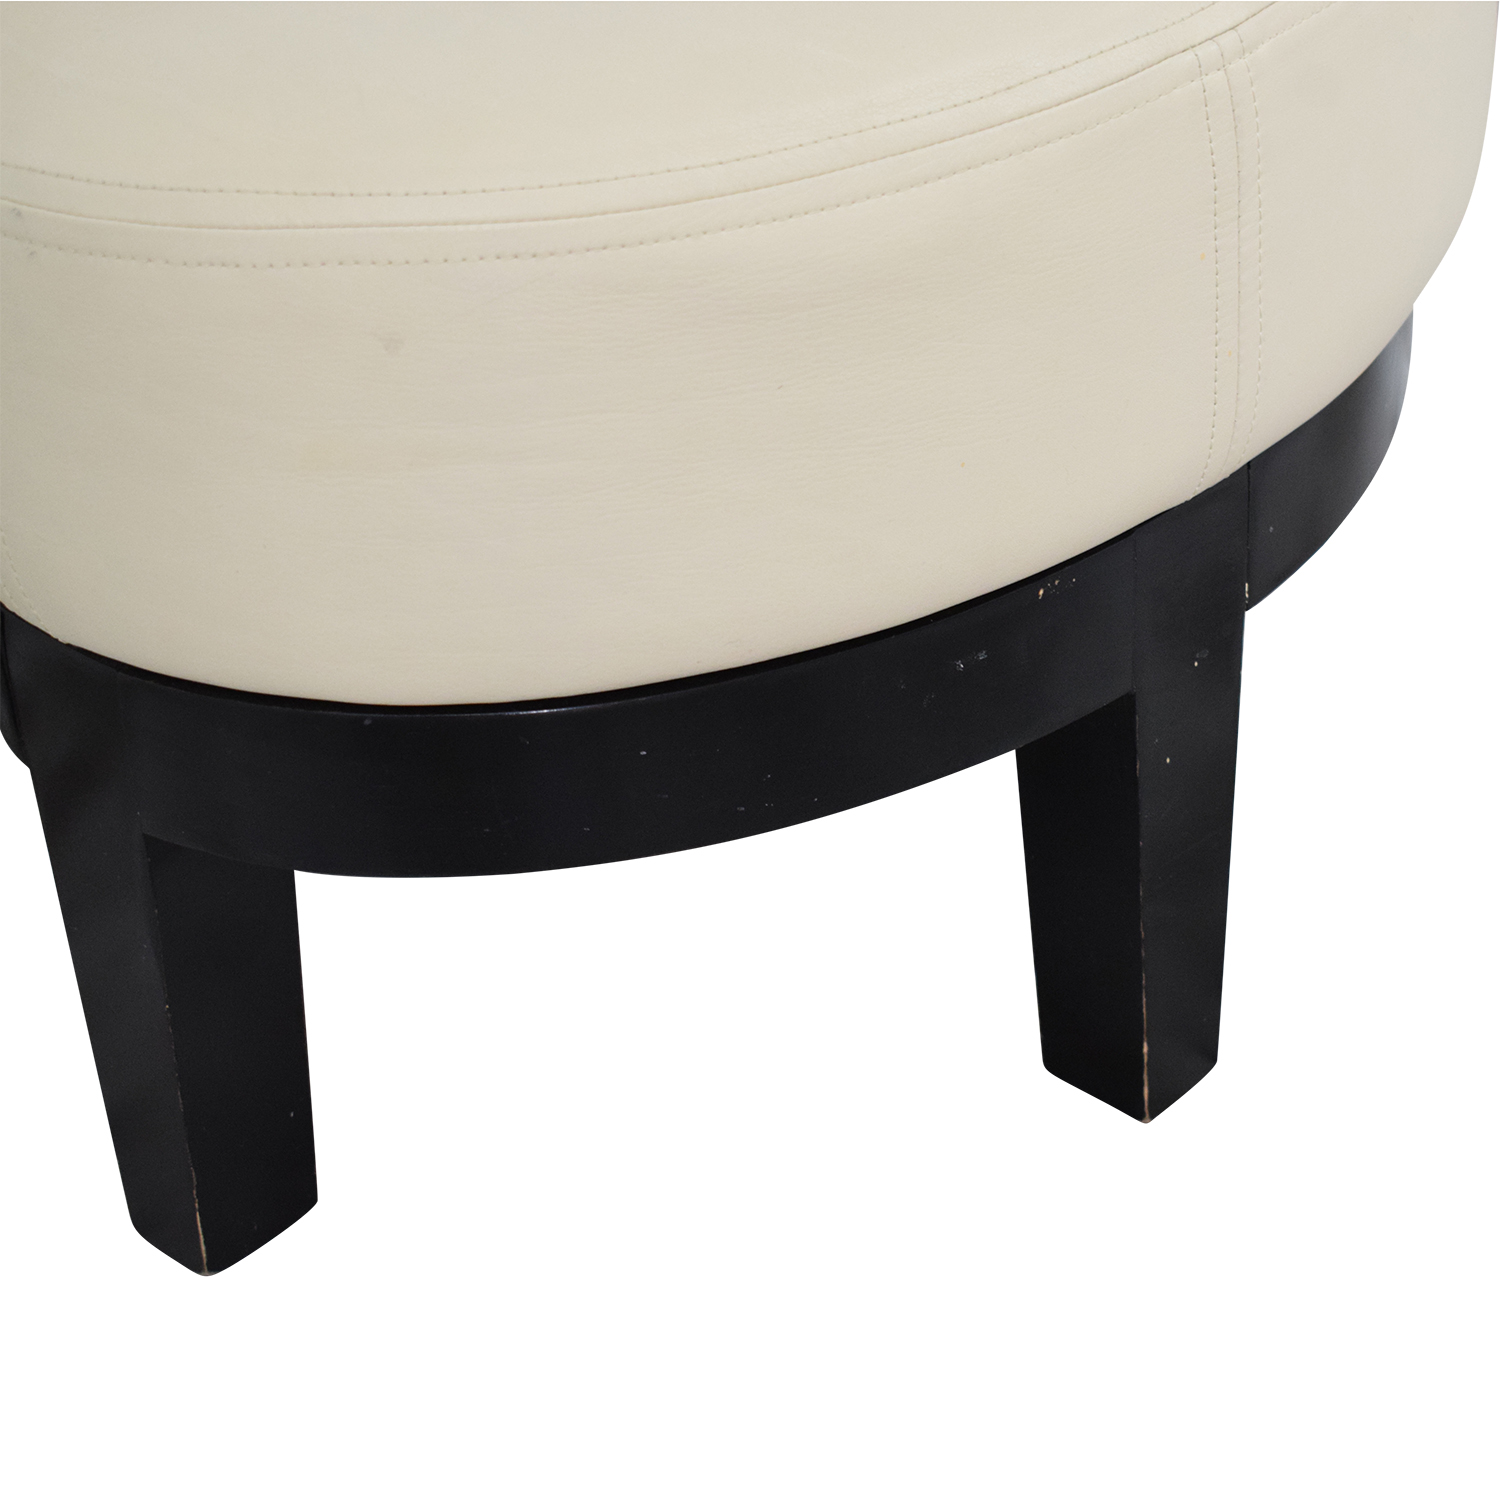 Armless Lounge Chair and Footstool on sale